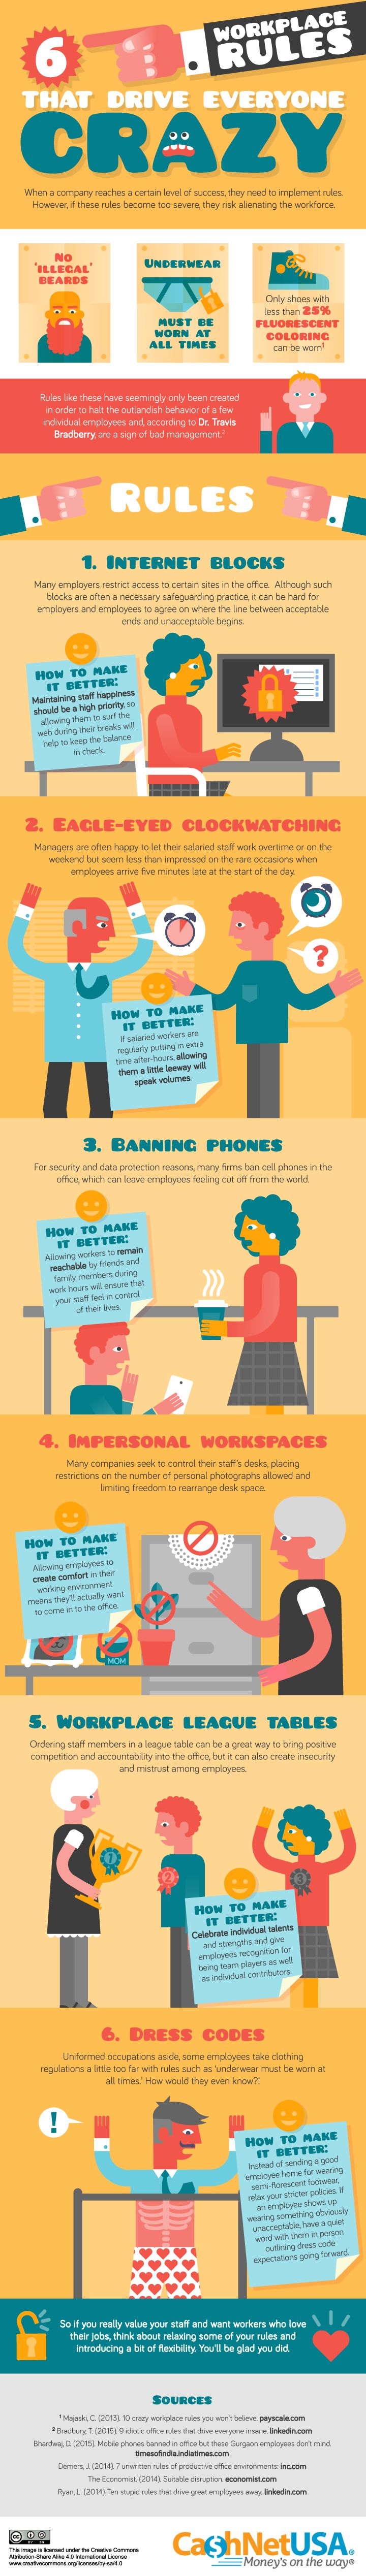 These Workplace Rules Drive Everyone Crazy